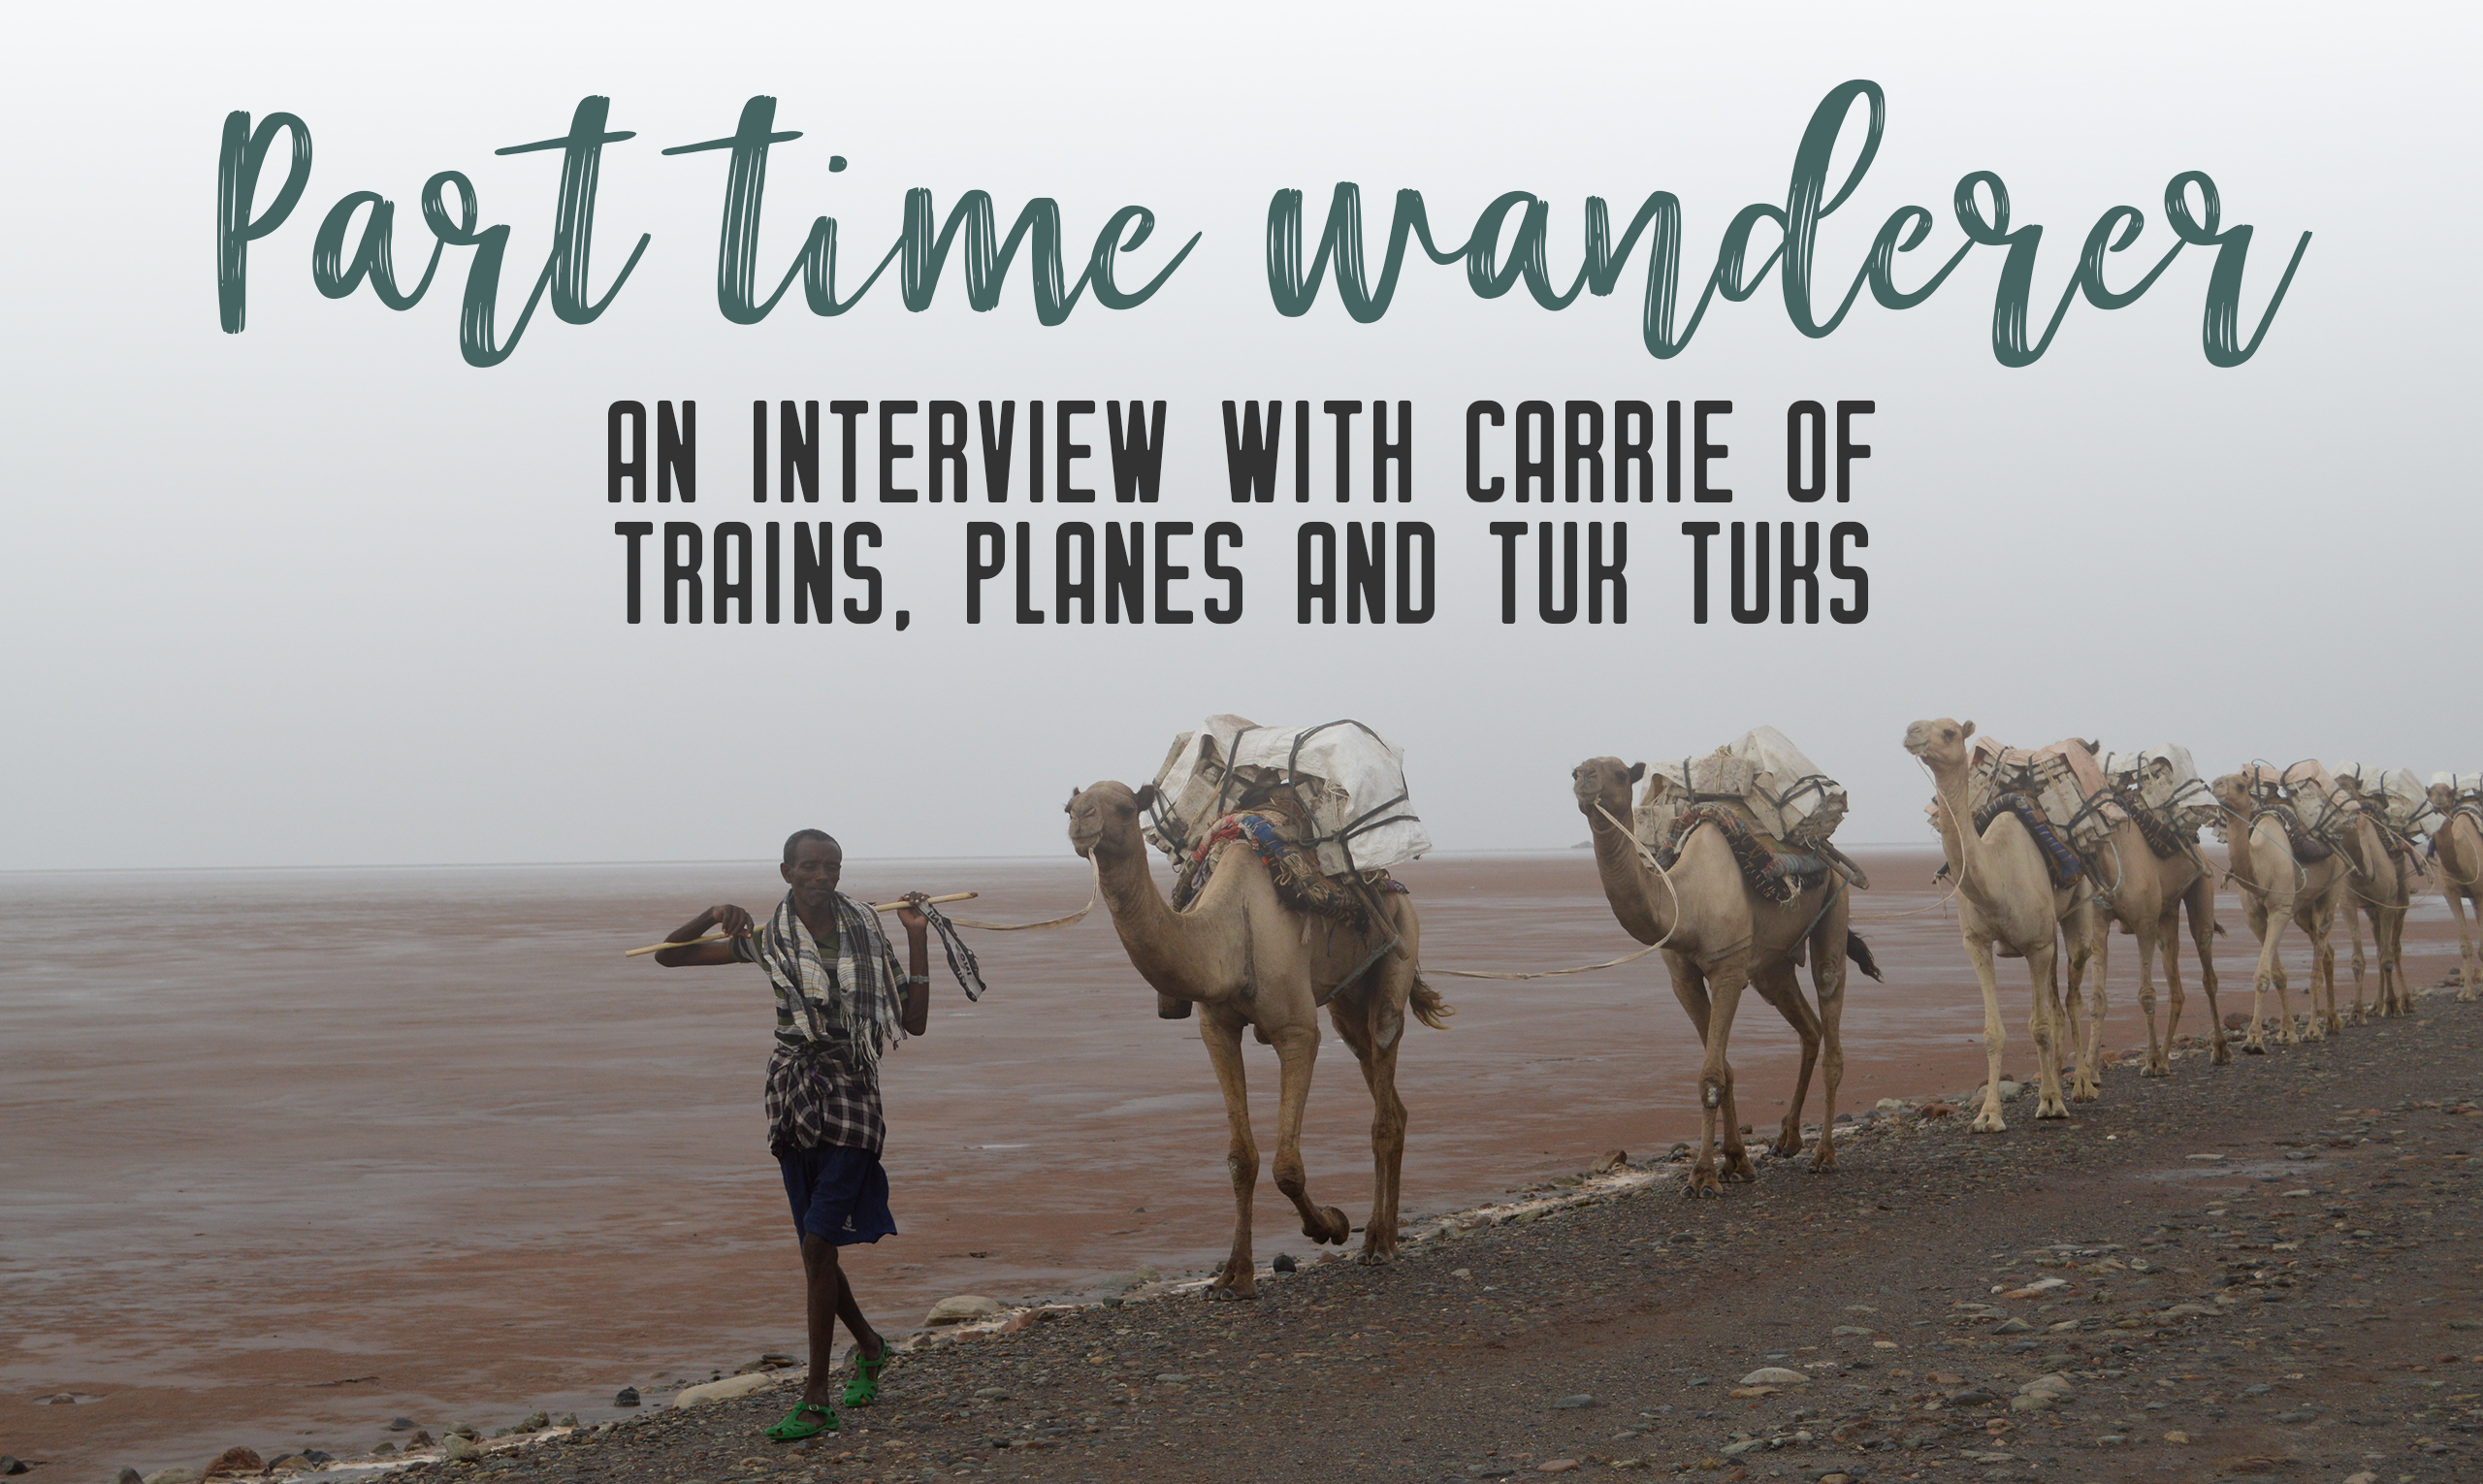 Part-time wanderer: Interview with Carrie - Share the love of travelling with other part-time travellers in this interview series. | My Wandering Voyage